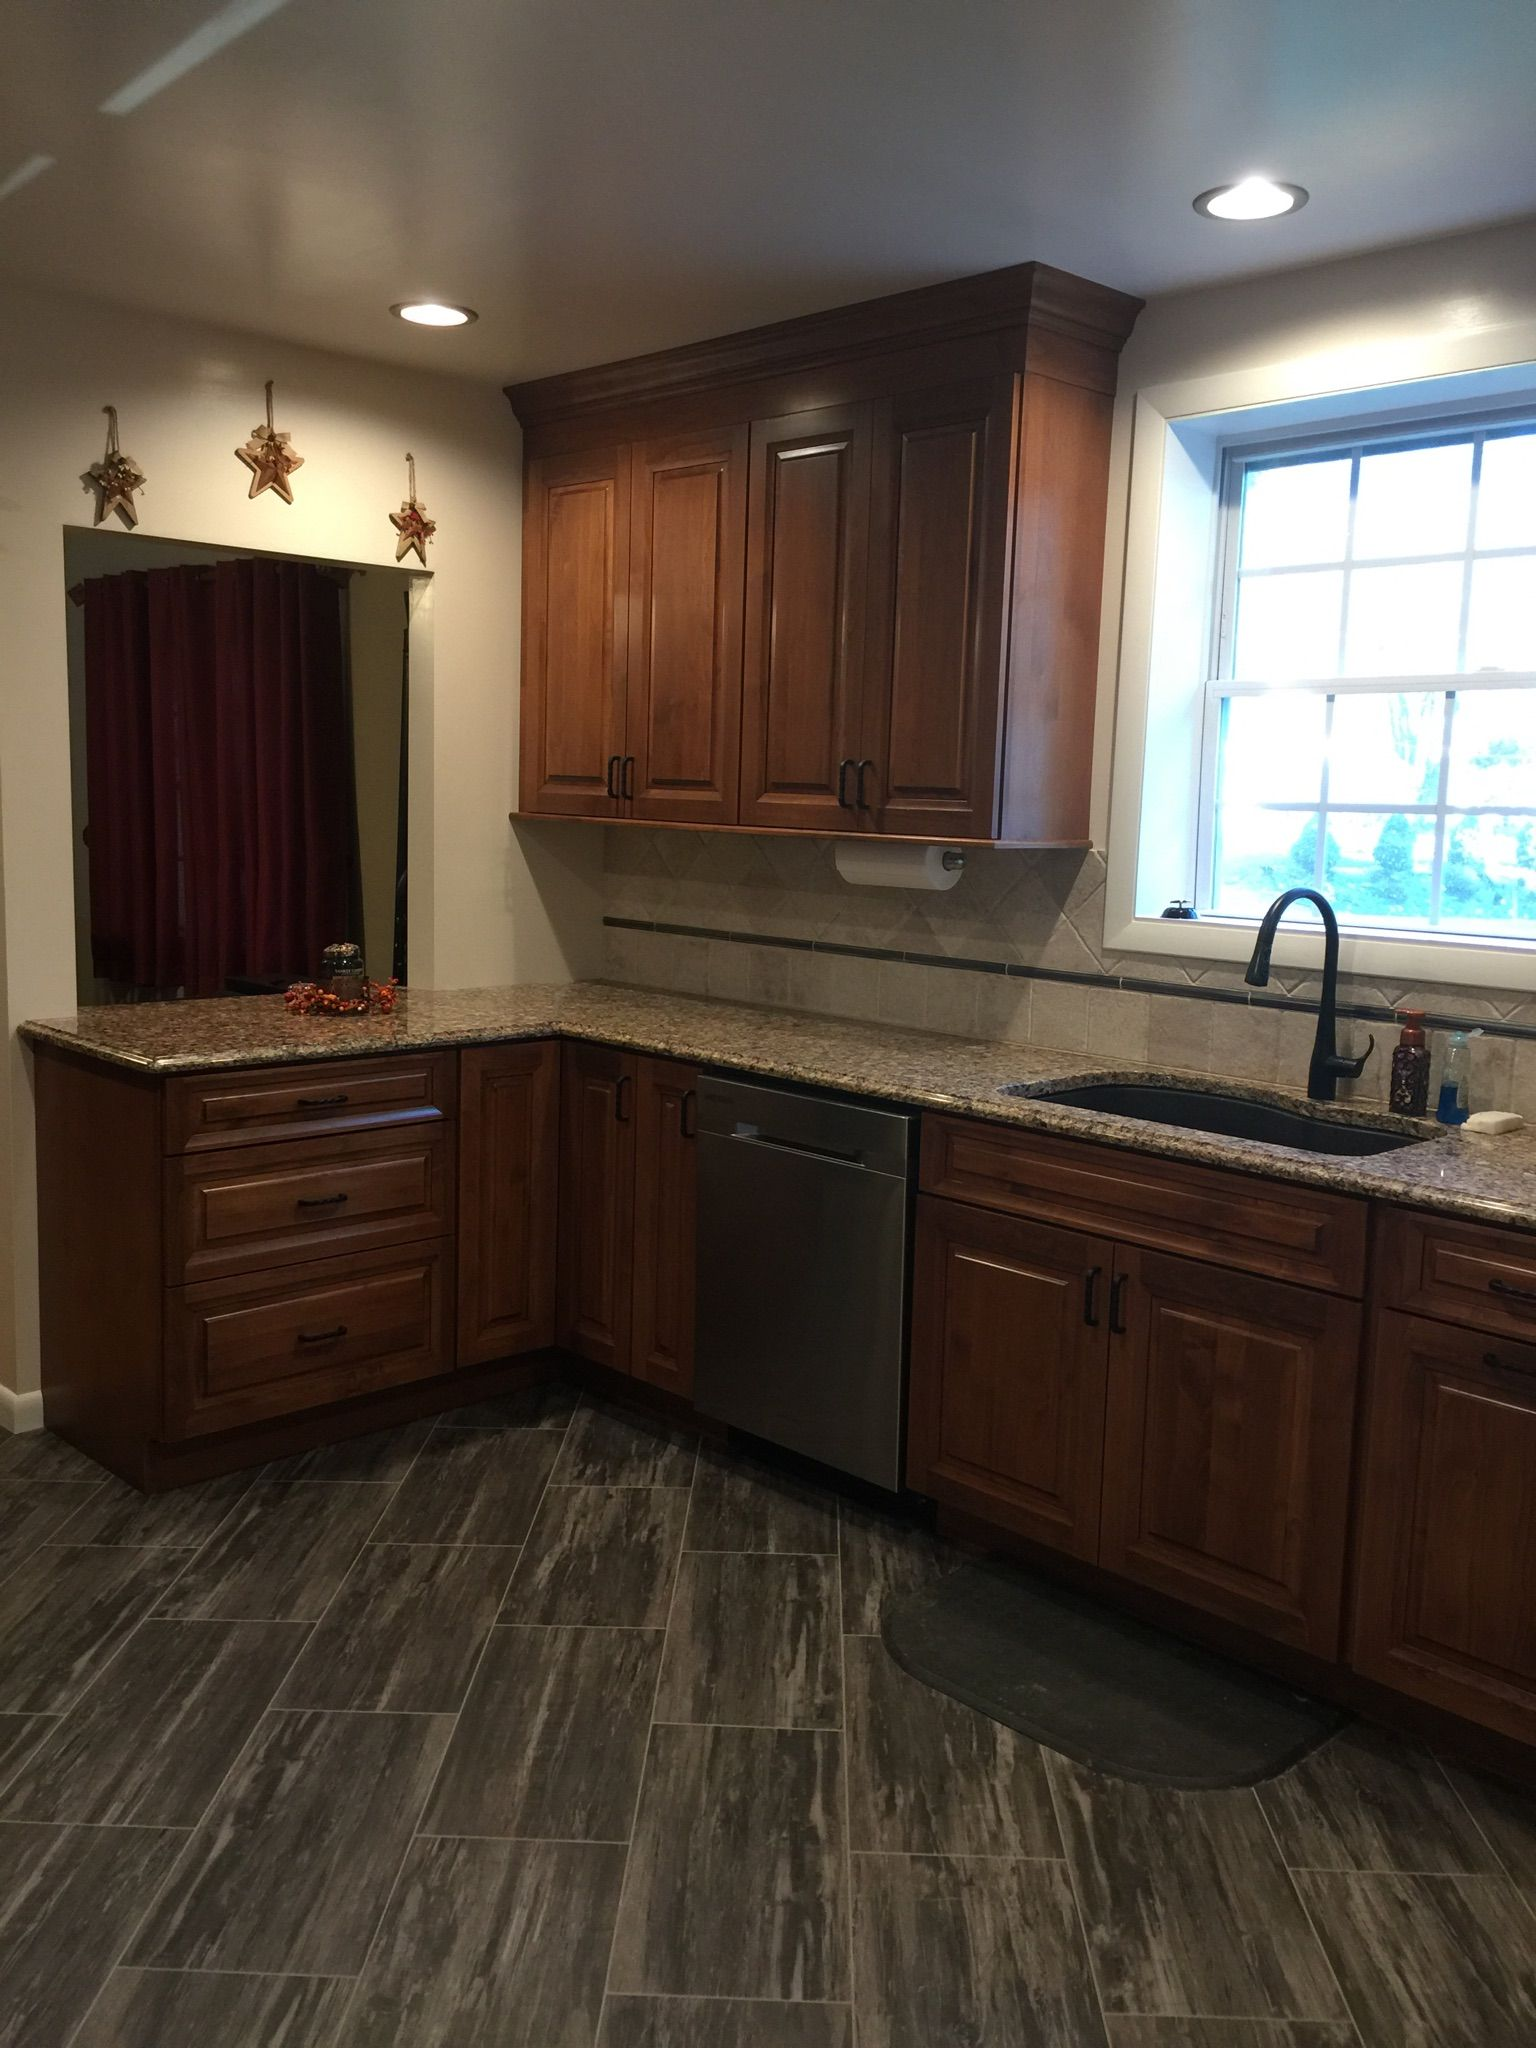 Pin by Bath, Kitchen & Tile Center on Kitchen Remodel in